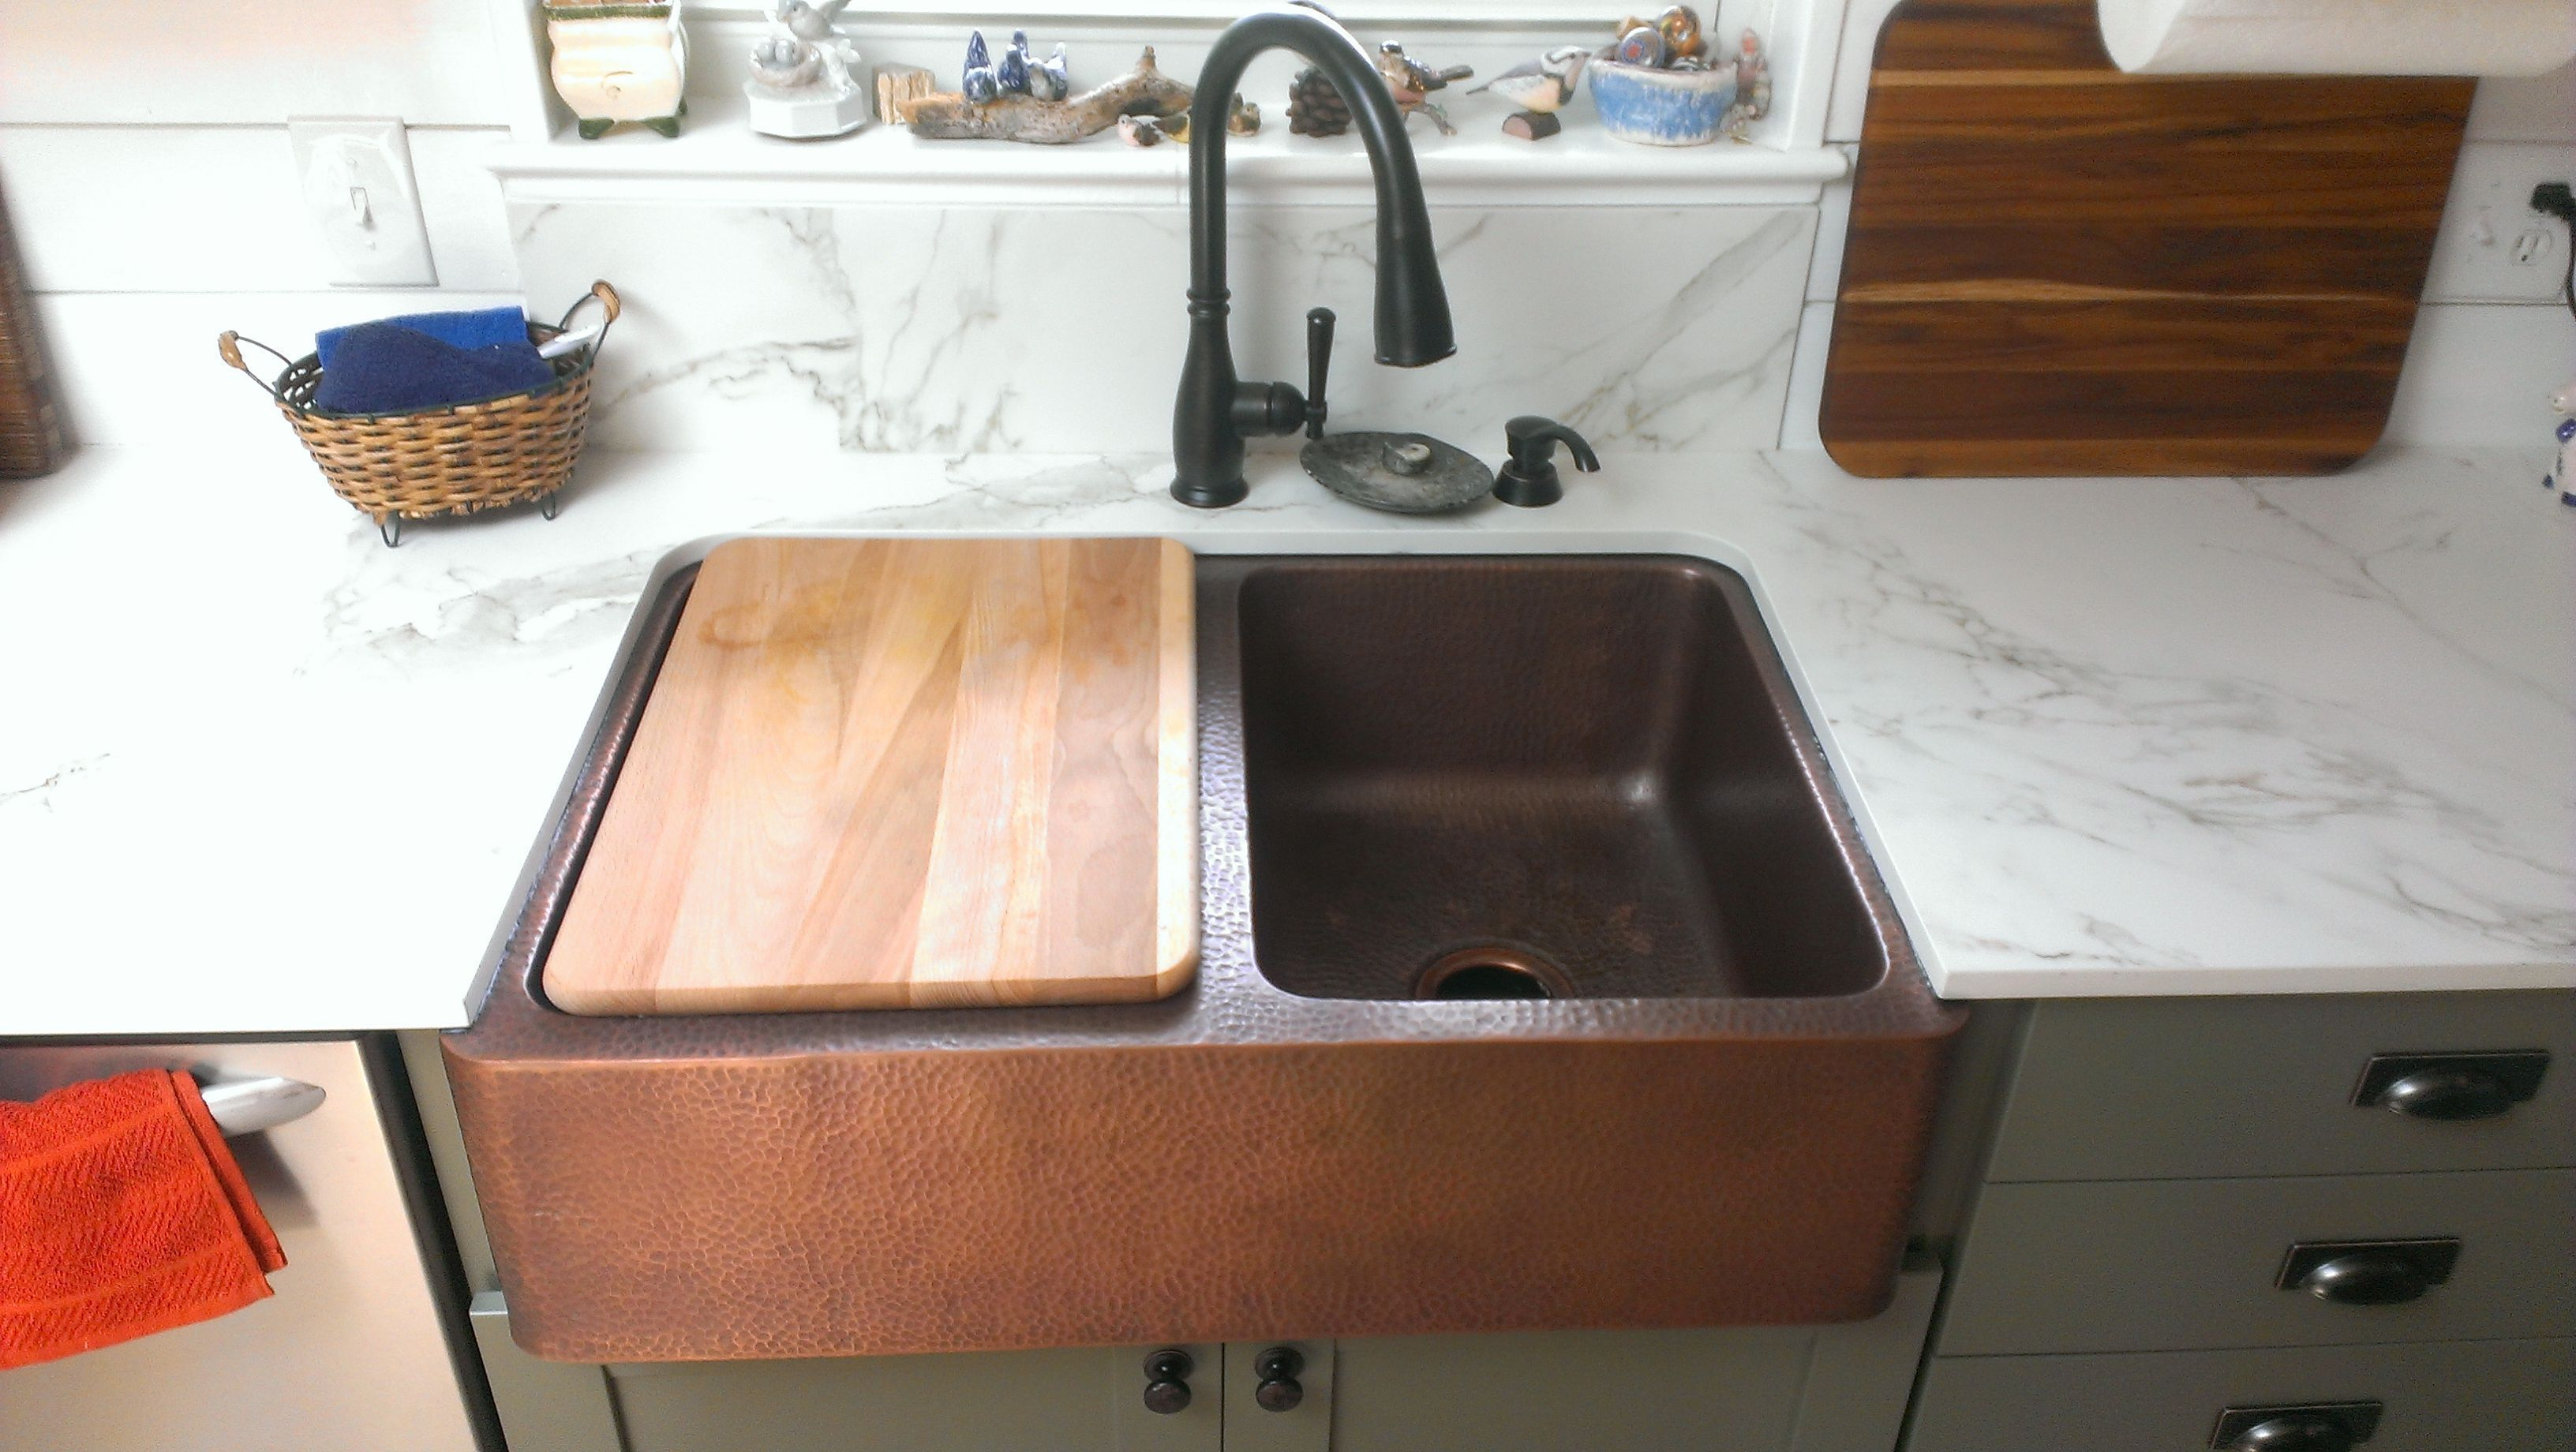 Copper Farmhouse Sink By Sinkology Purchased From Home Depot And Entzo Calacutta Copper Farmhouse Sink By Sinkol In 2020 Copper Farmhouse Sinks Farmhouse Sink Sink